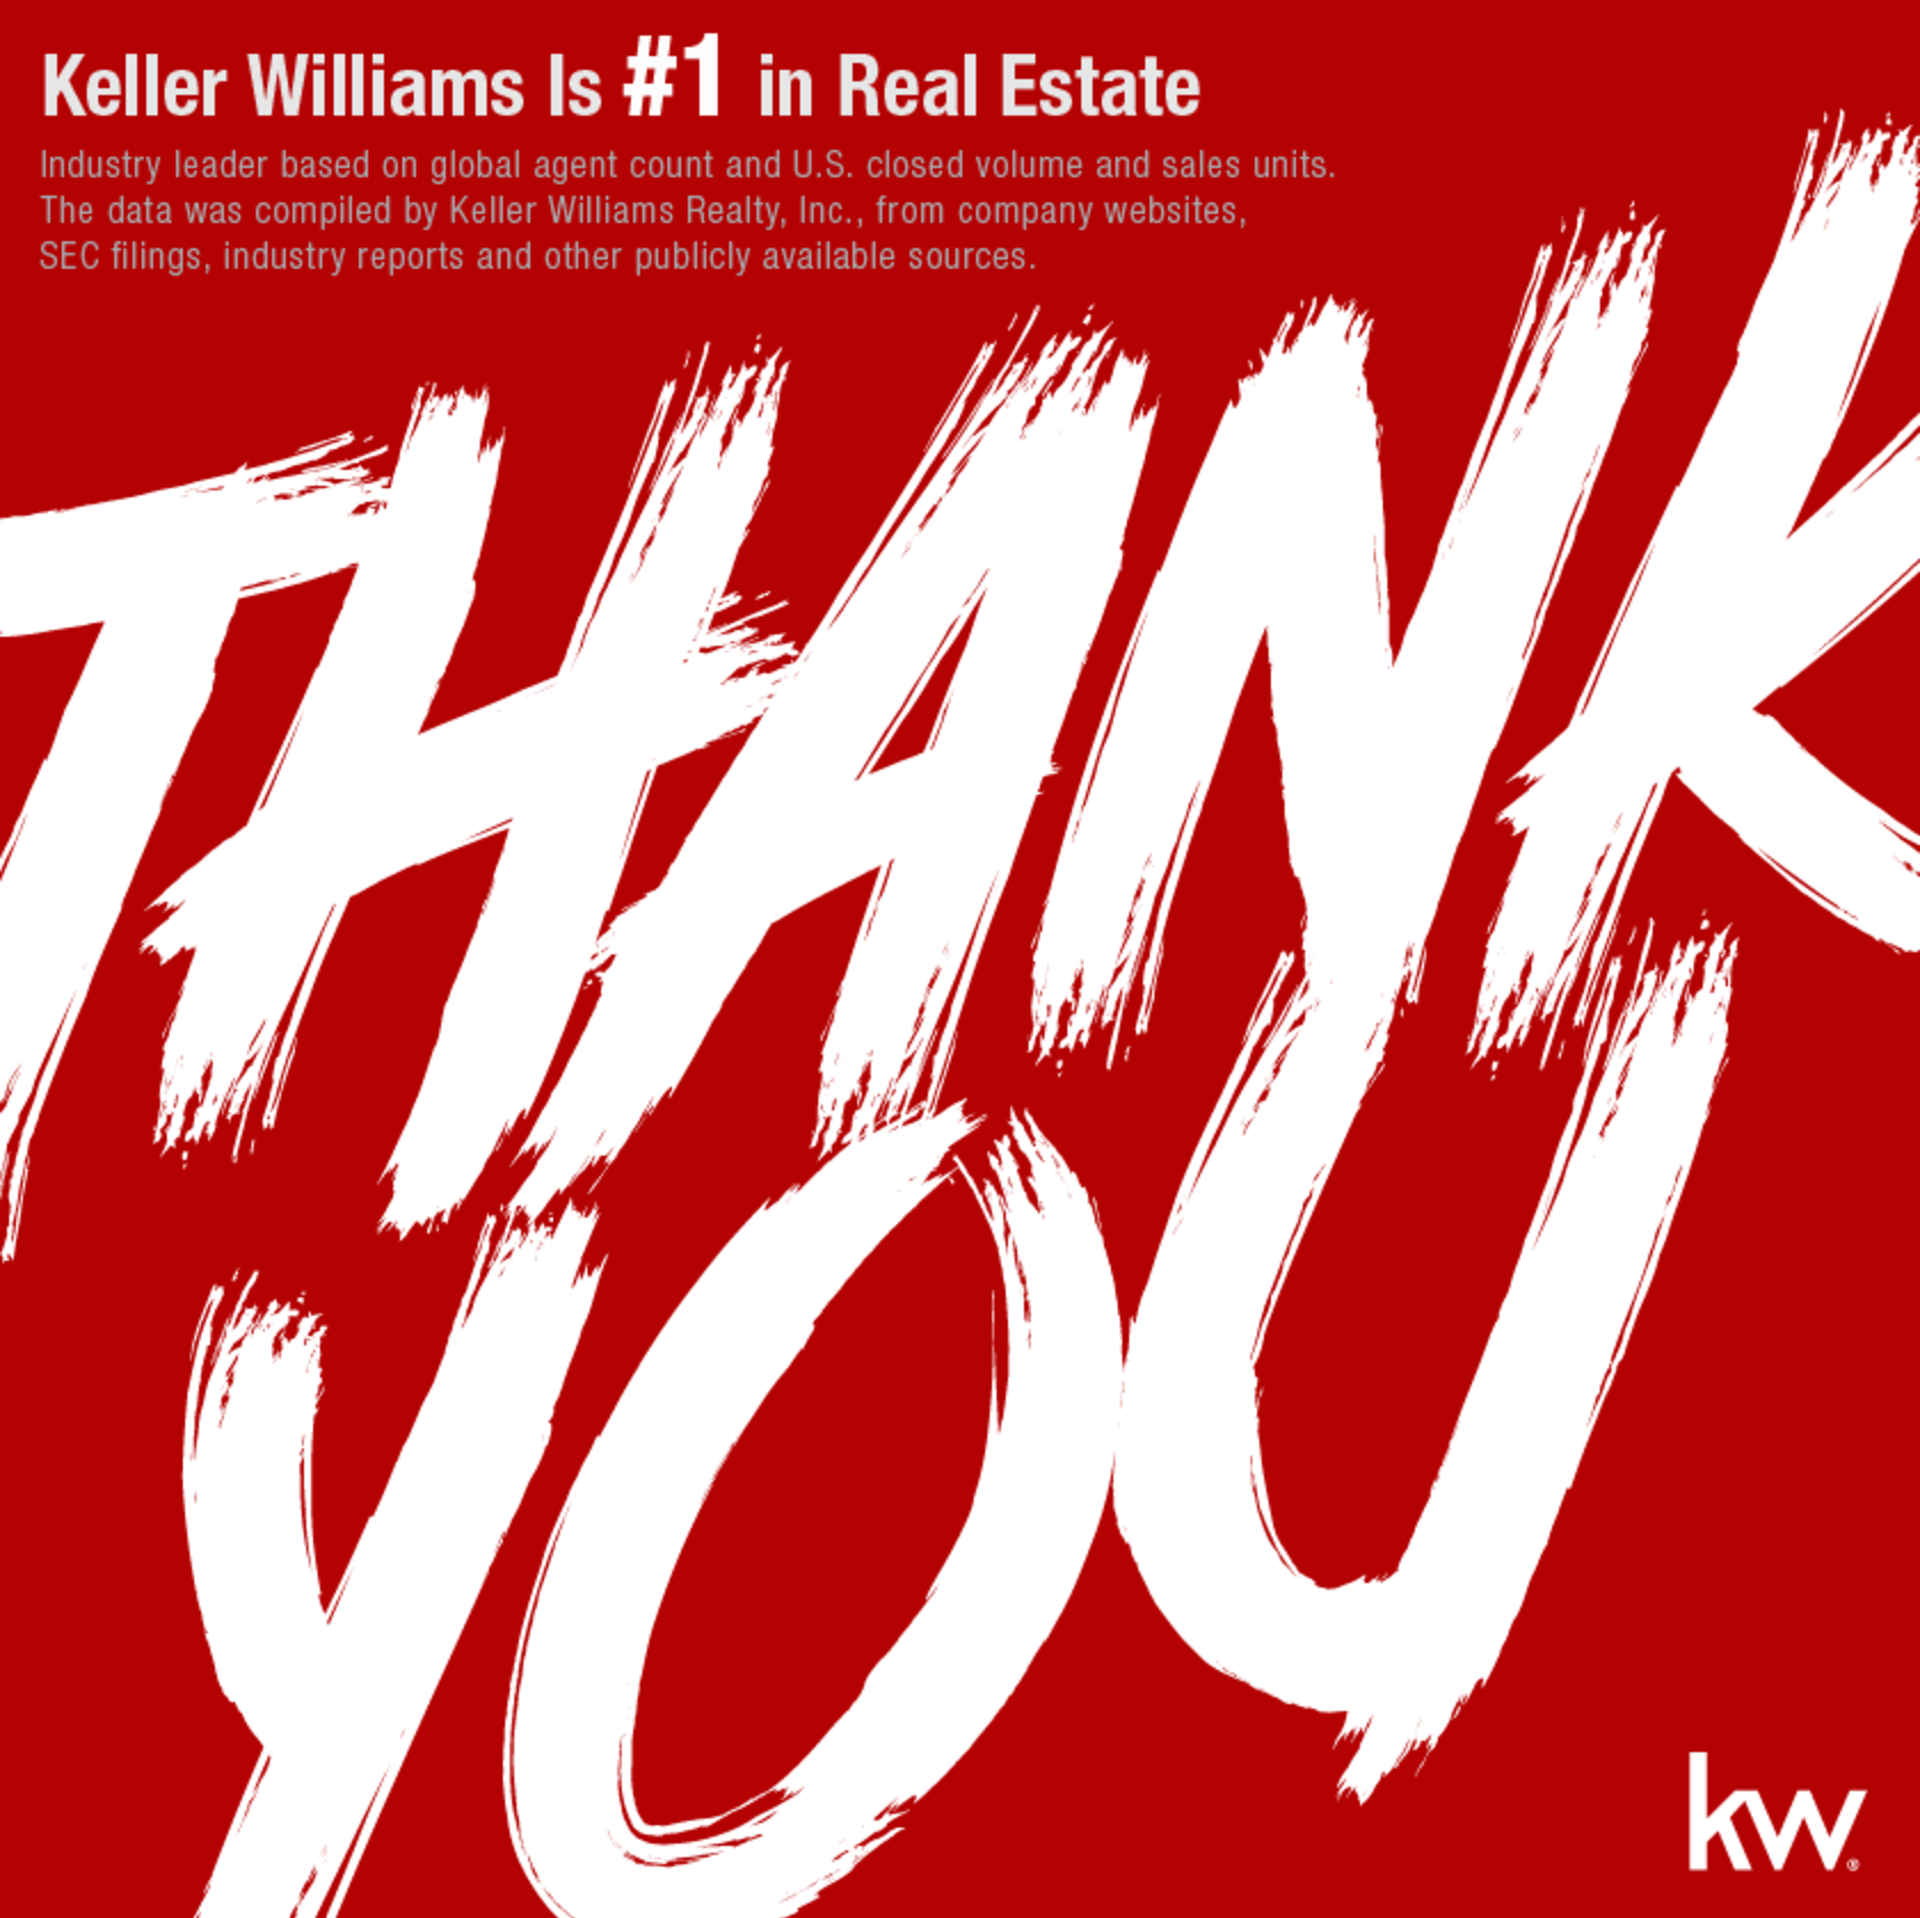 Keller Williams Realty Now #1 Real Estate Company